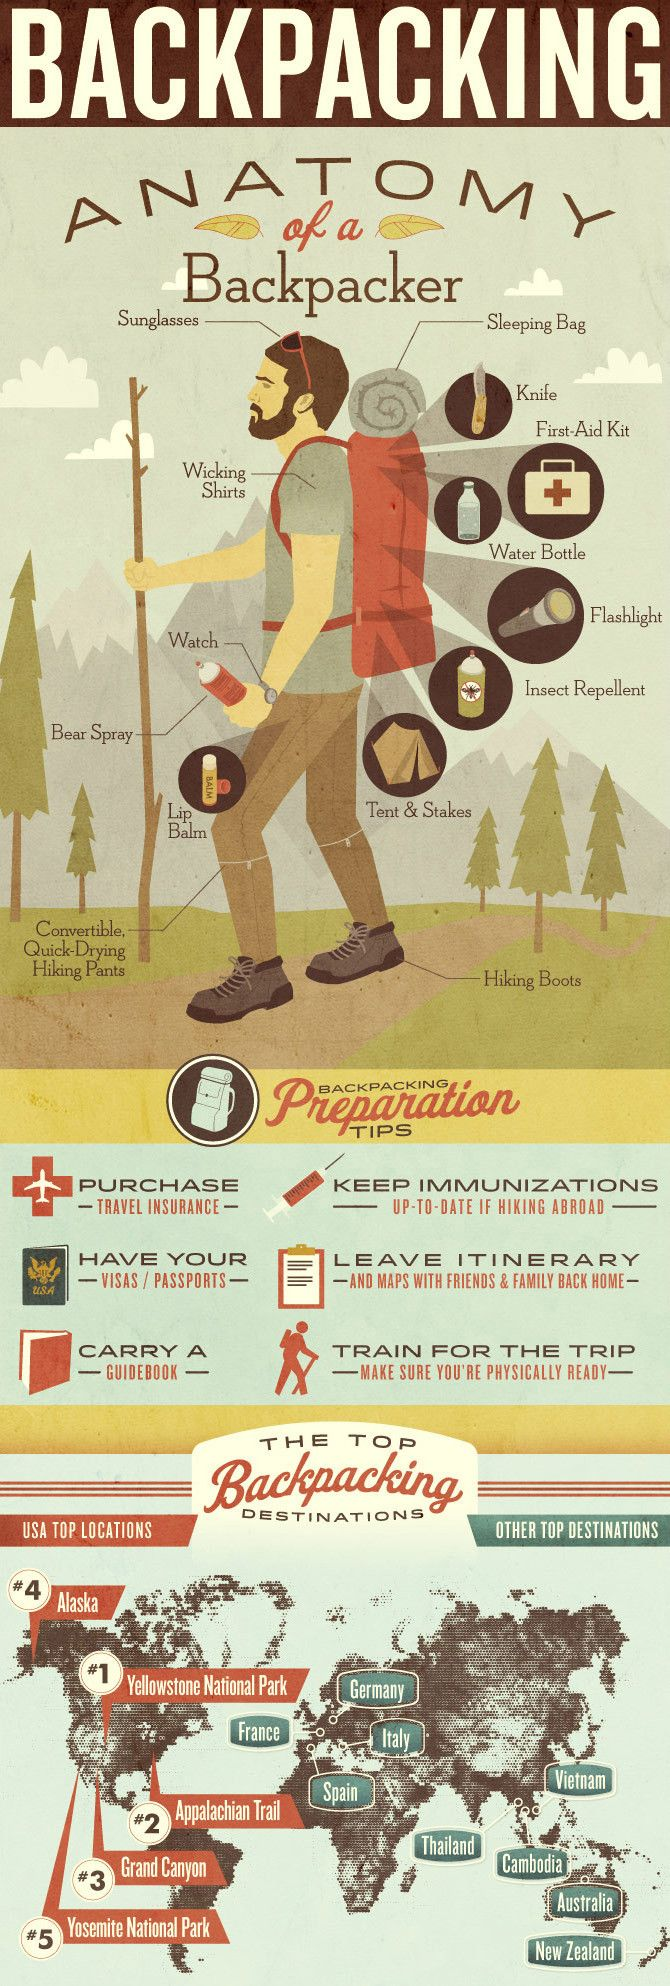 The Anatomy of a Backpacker  Source: HCCMIS  If you're planning on going on a backpacking trip anytime soon, you'll want to know what to bring and where to go. This cool infographic lists all the things you'll want to include on your trip, how to prepare for your trip, and where to go on your trip.